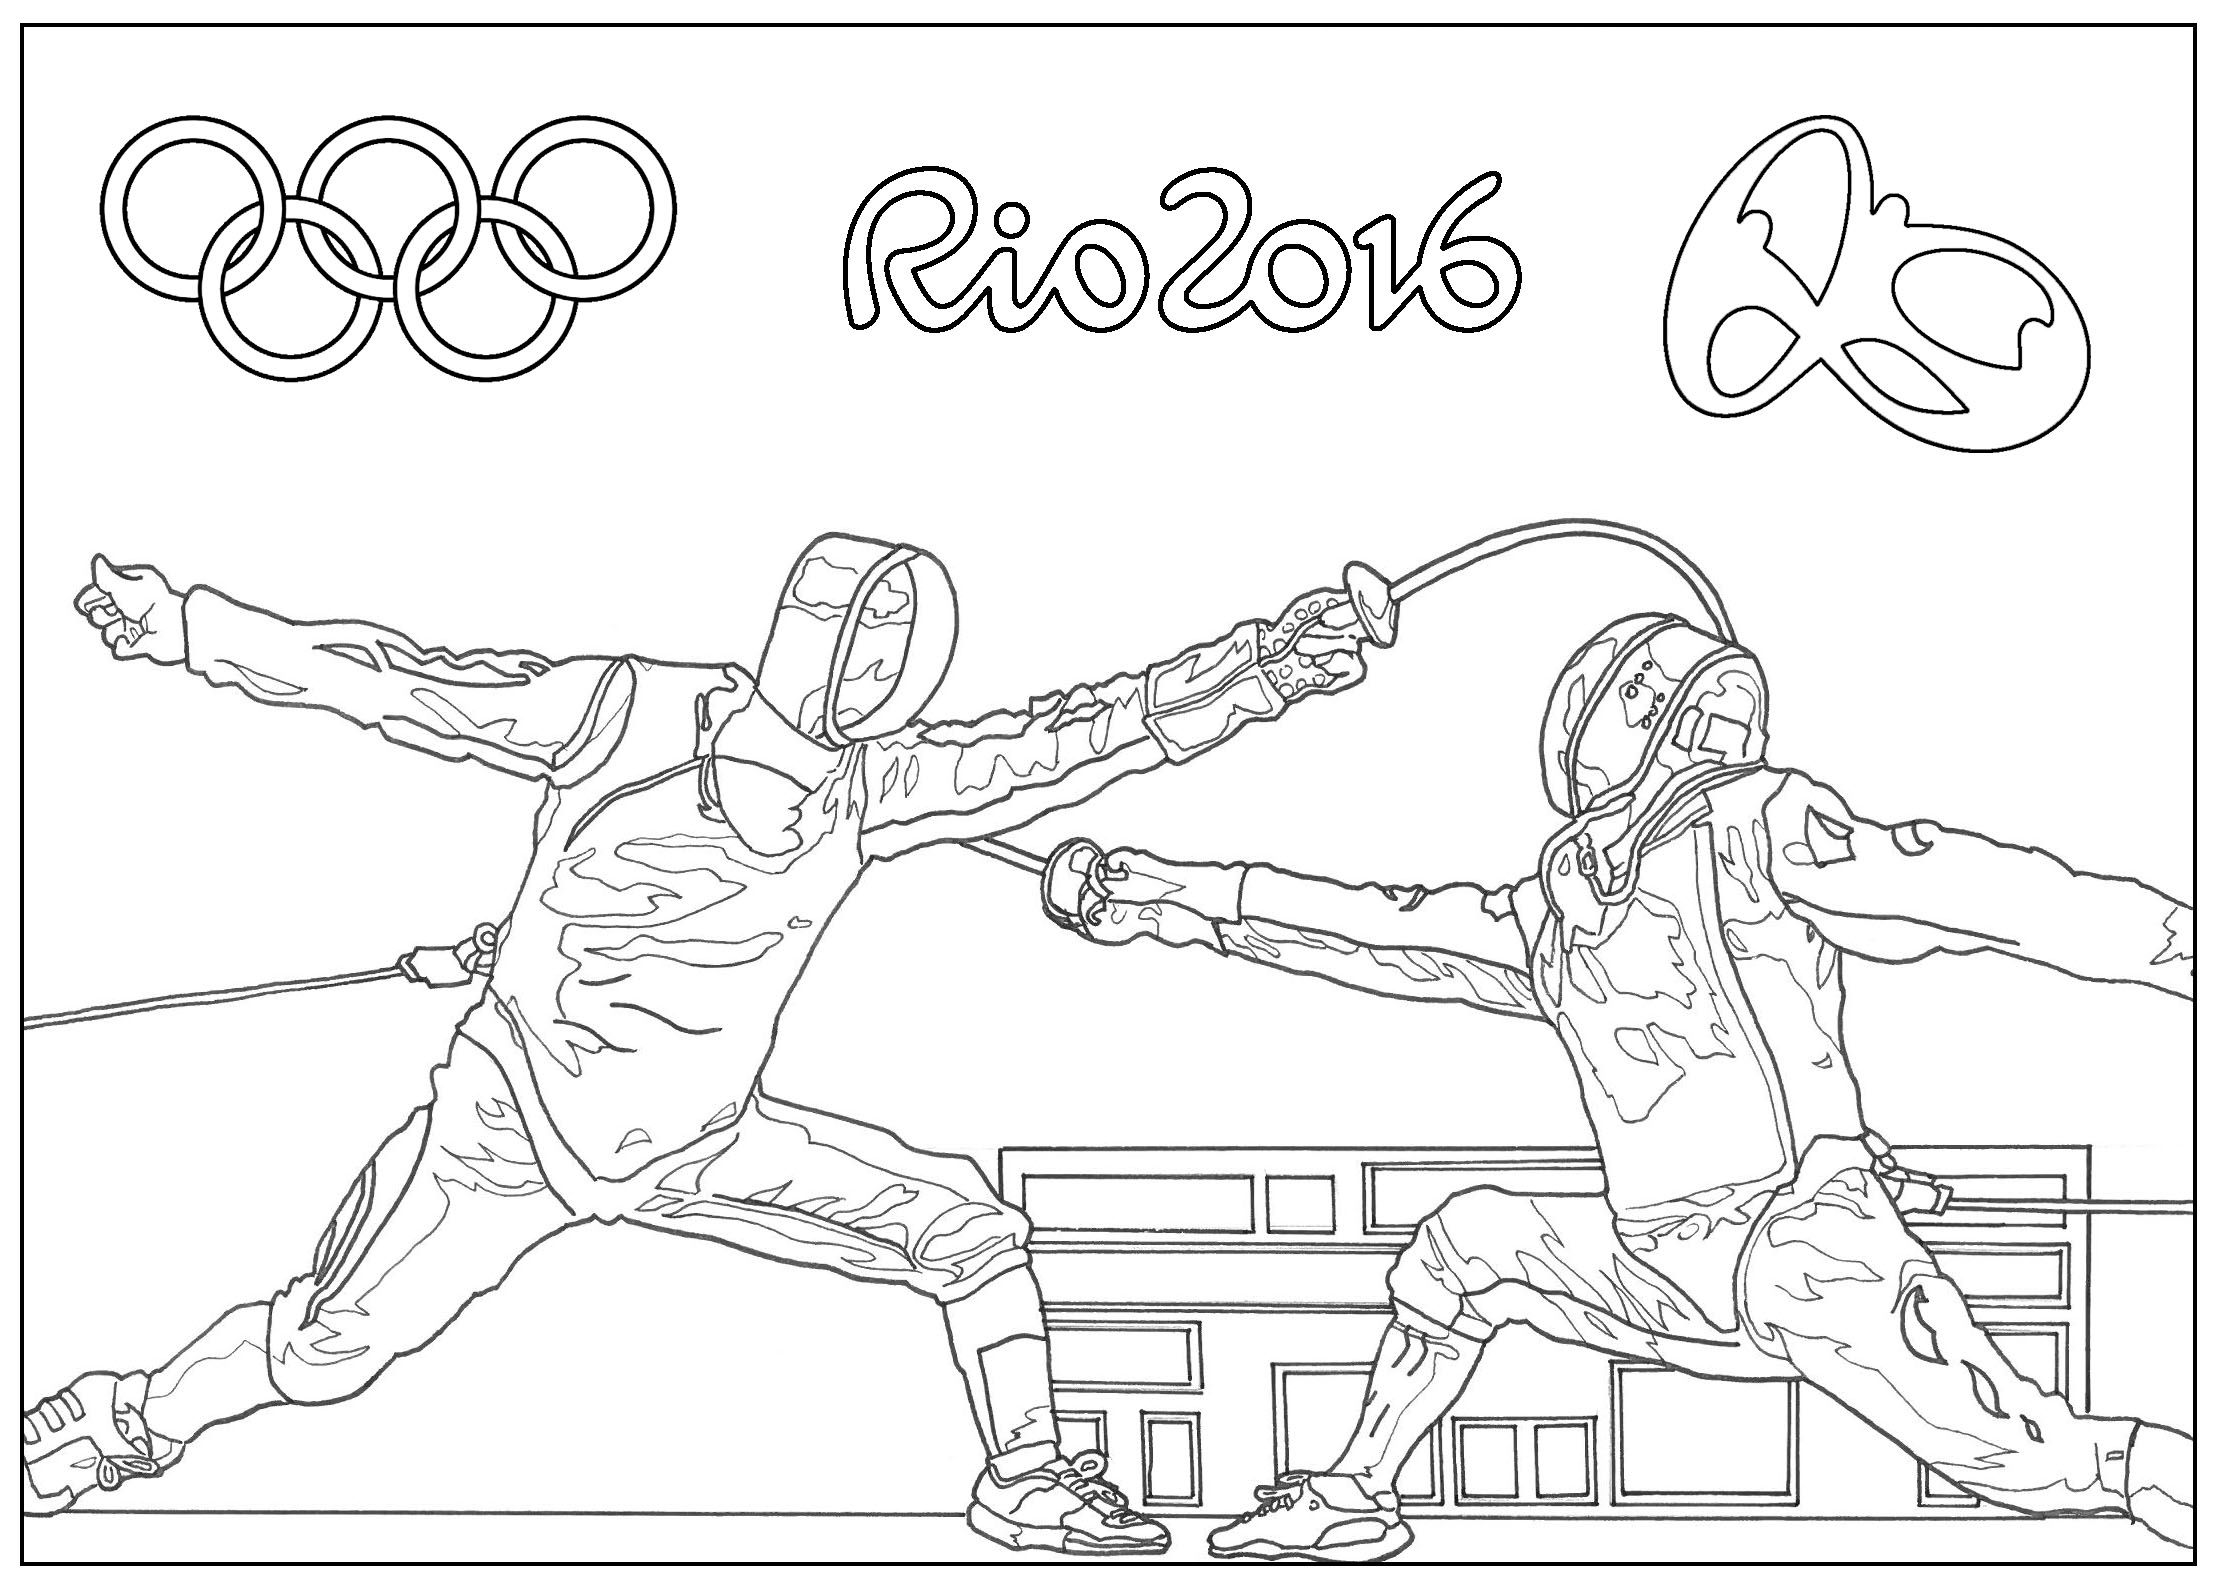 Free Coloring Page Adult Rio 2016 Olympic Games Fencing